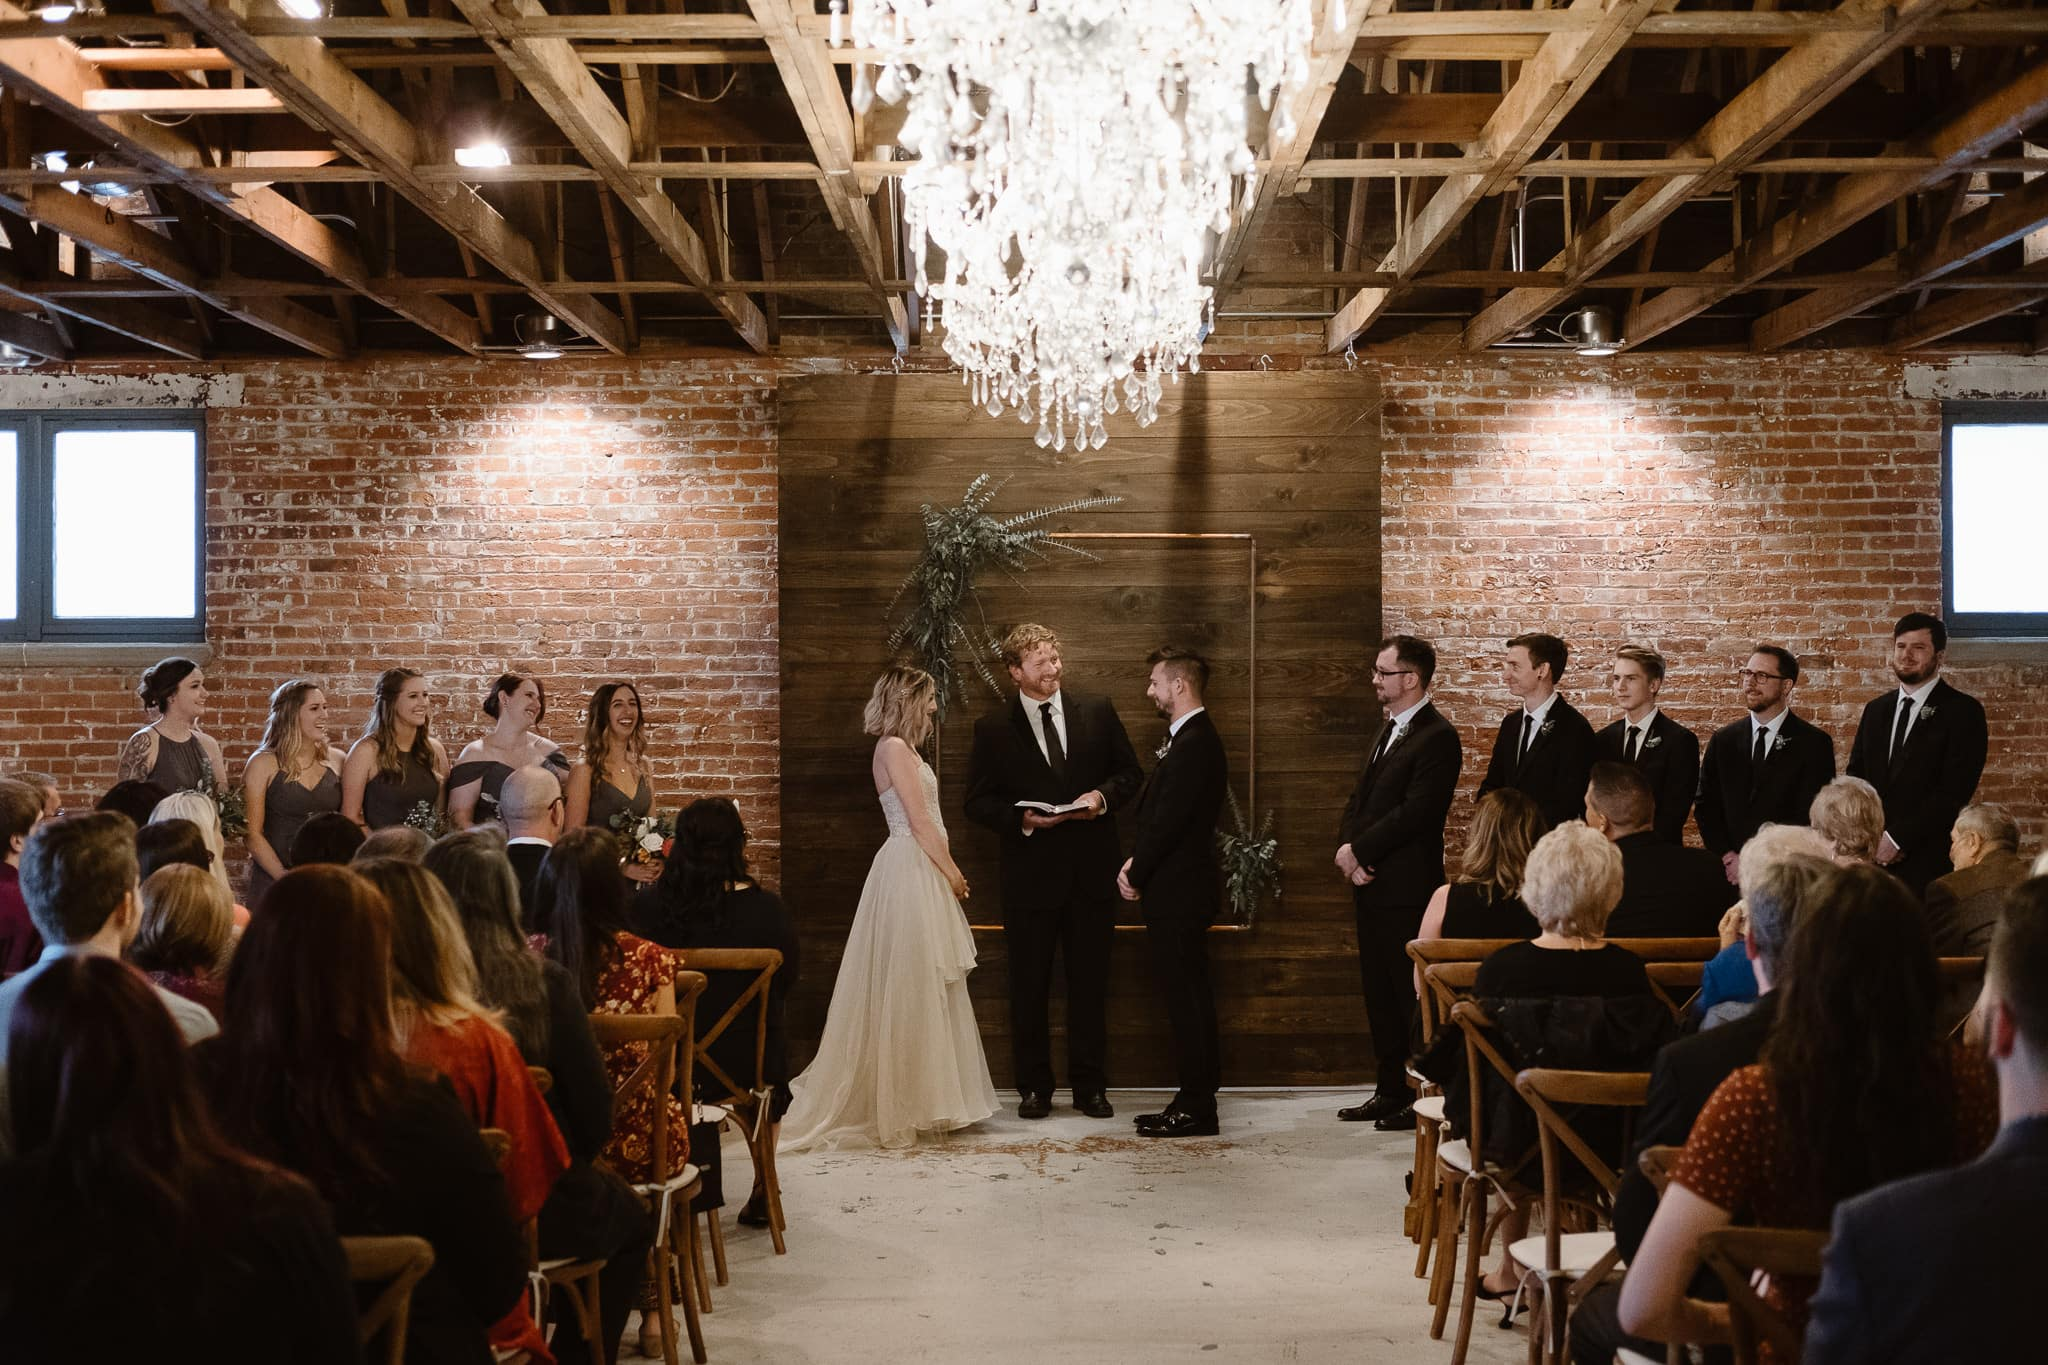 St Vrain Wedding Photographer | Longmont Wedding Photographer | Colorado Winter Wedding Photographer, Colorado industrial chic wedding ceremony,